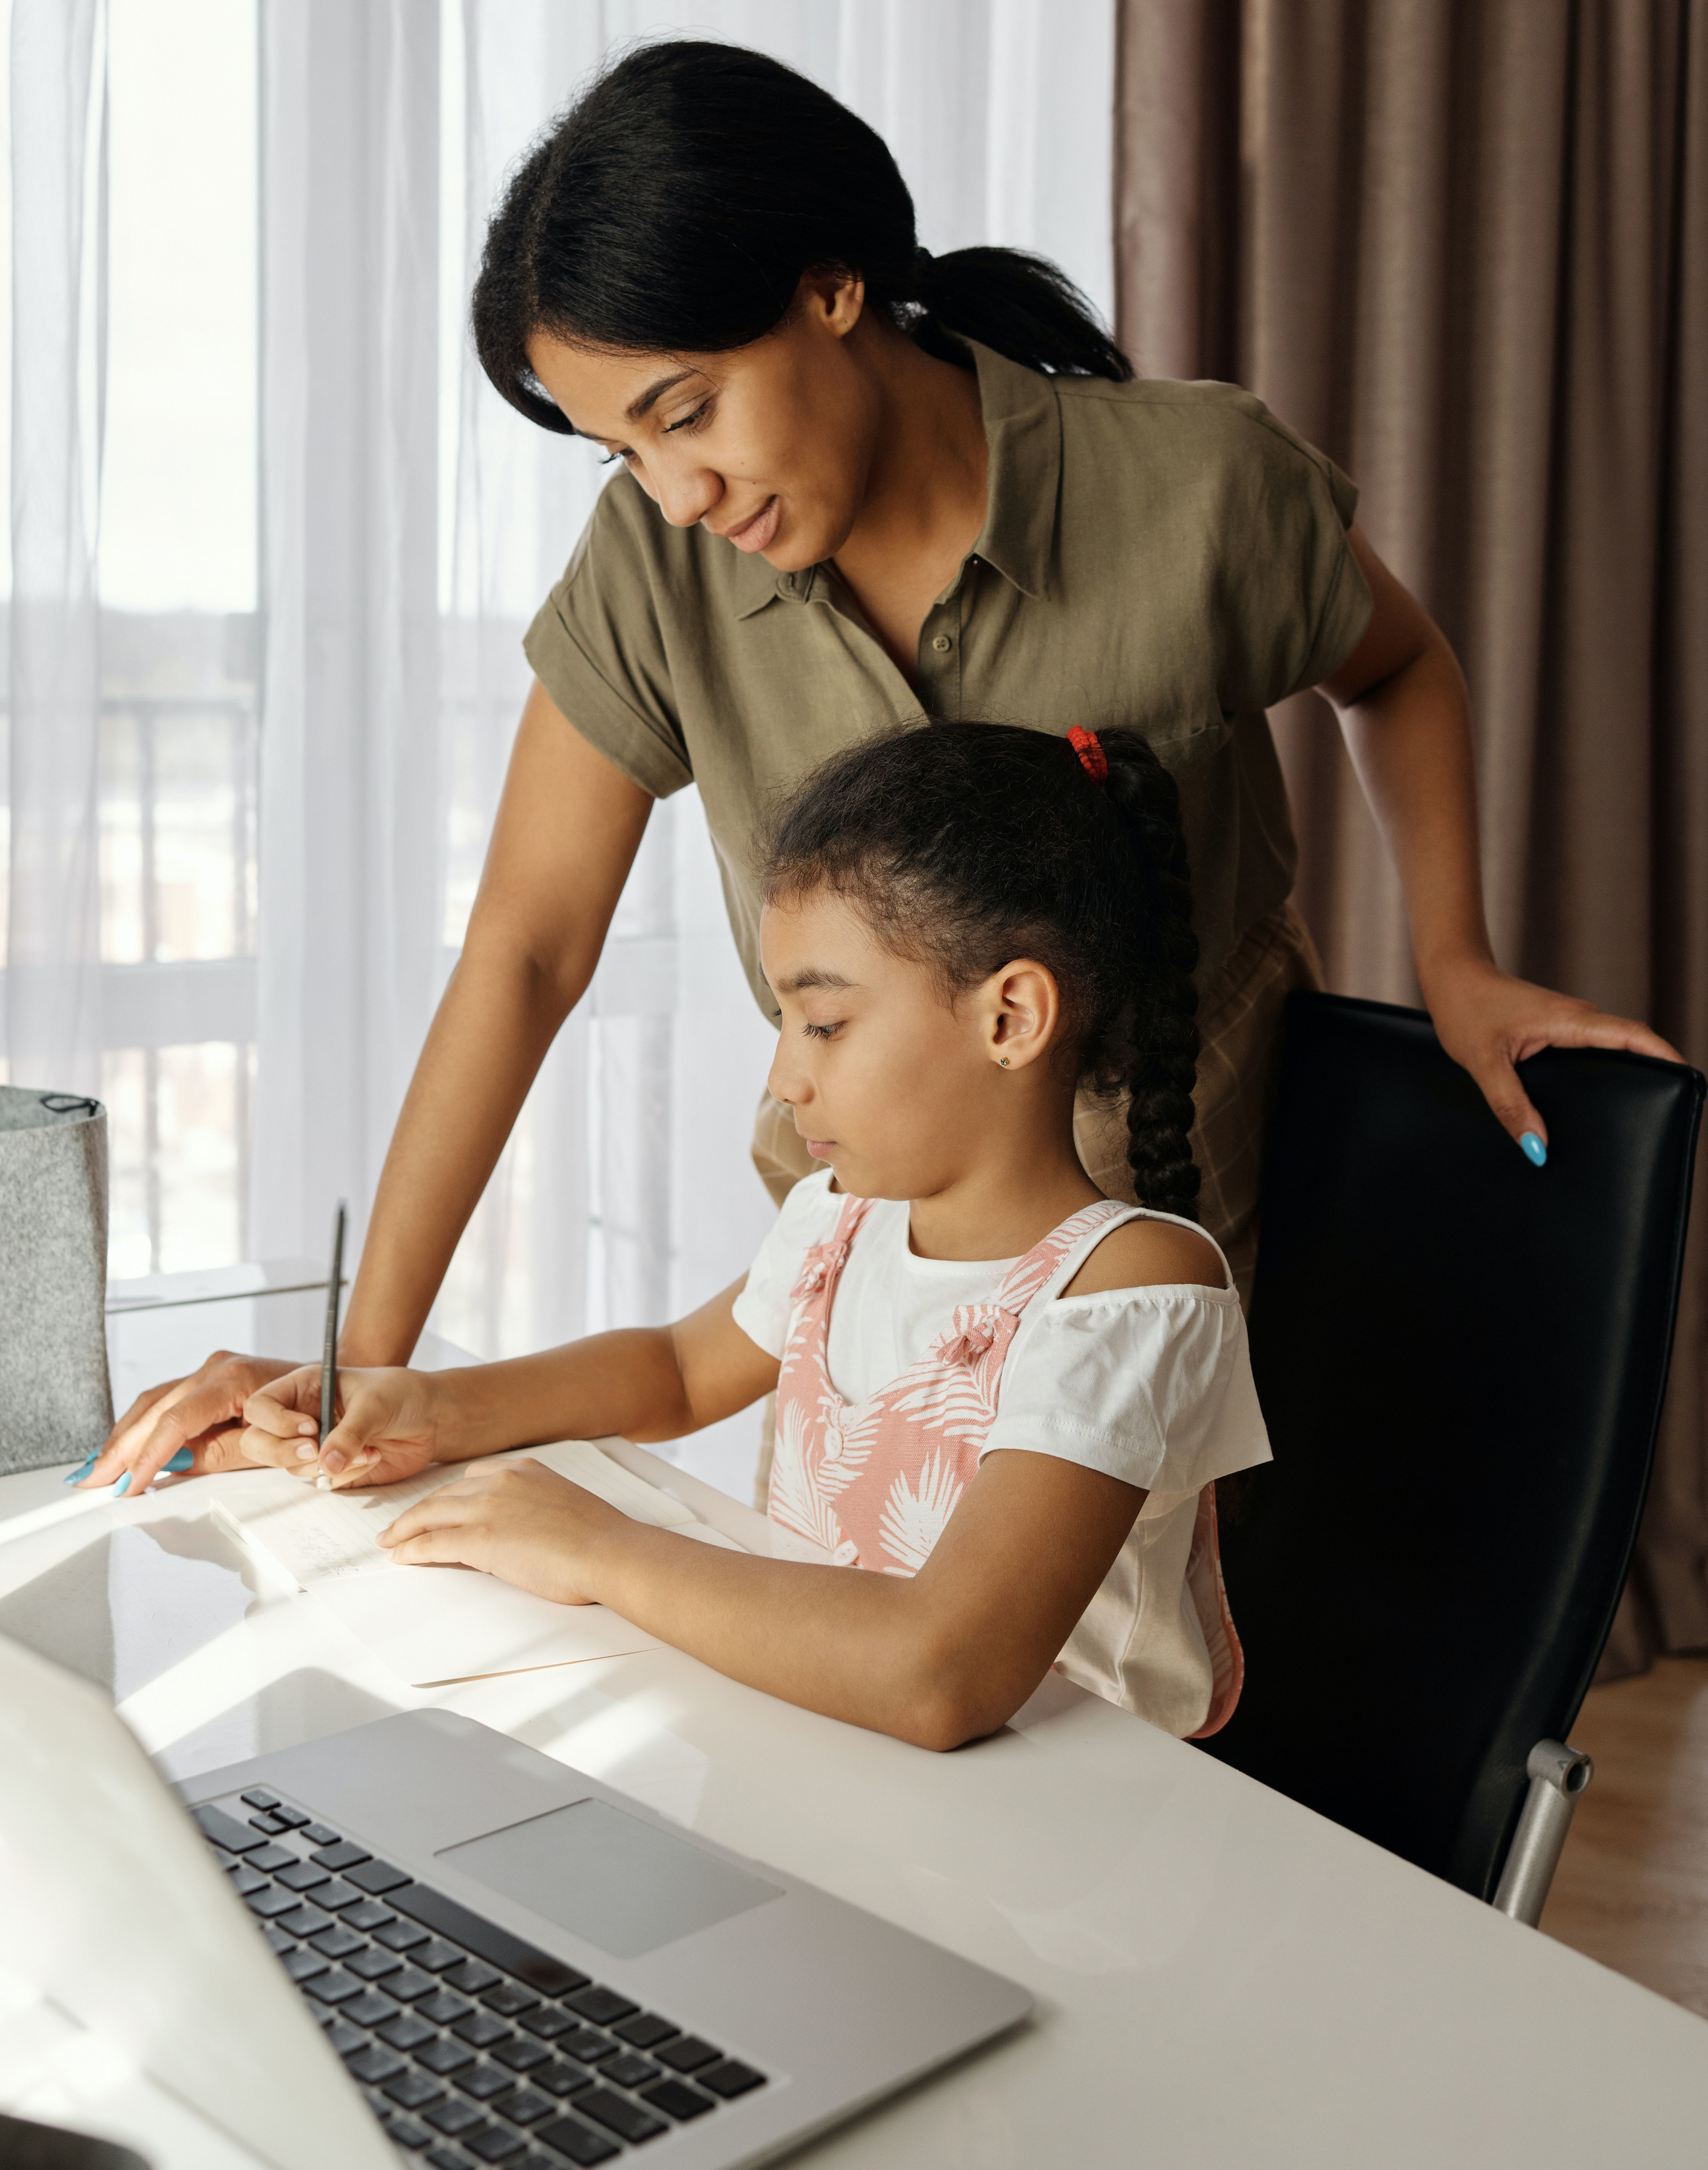 Keeping kids safe from online threats is a top priority.